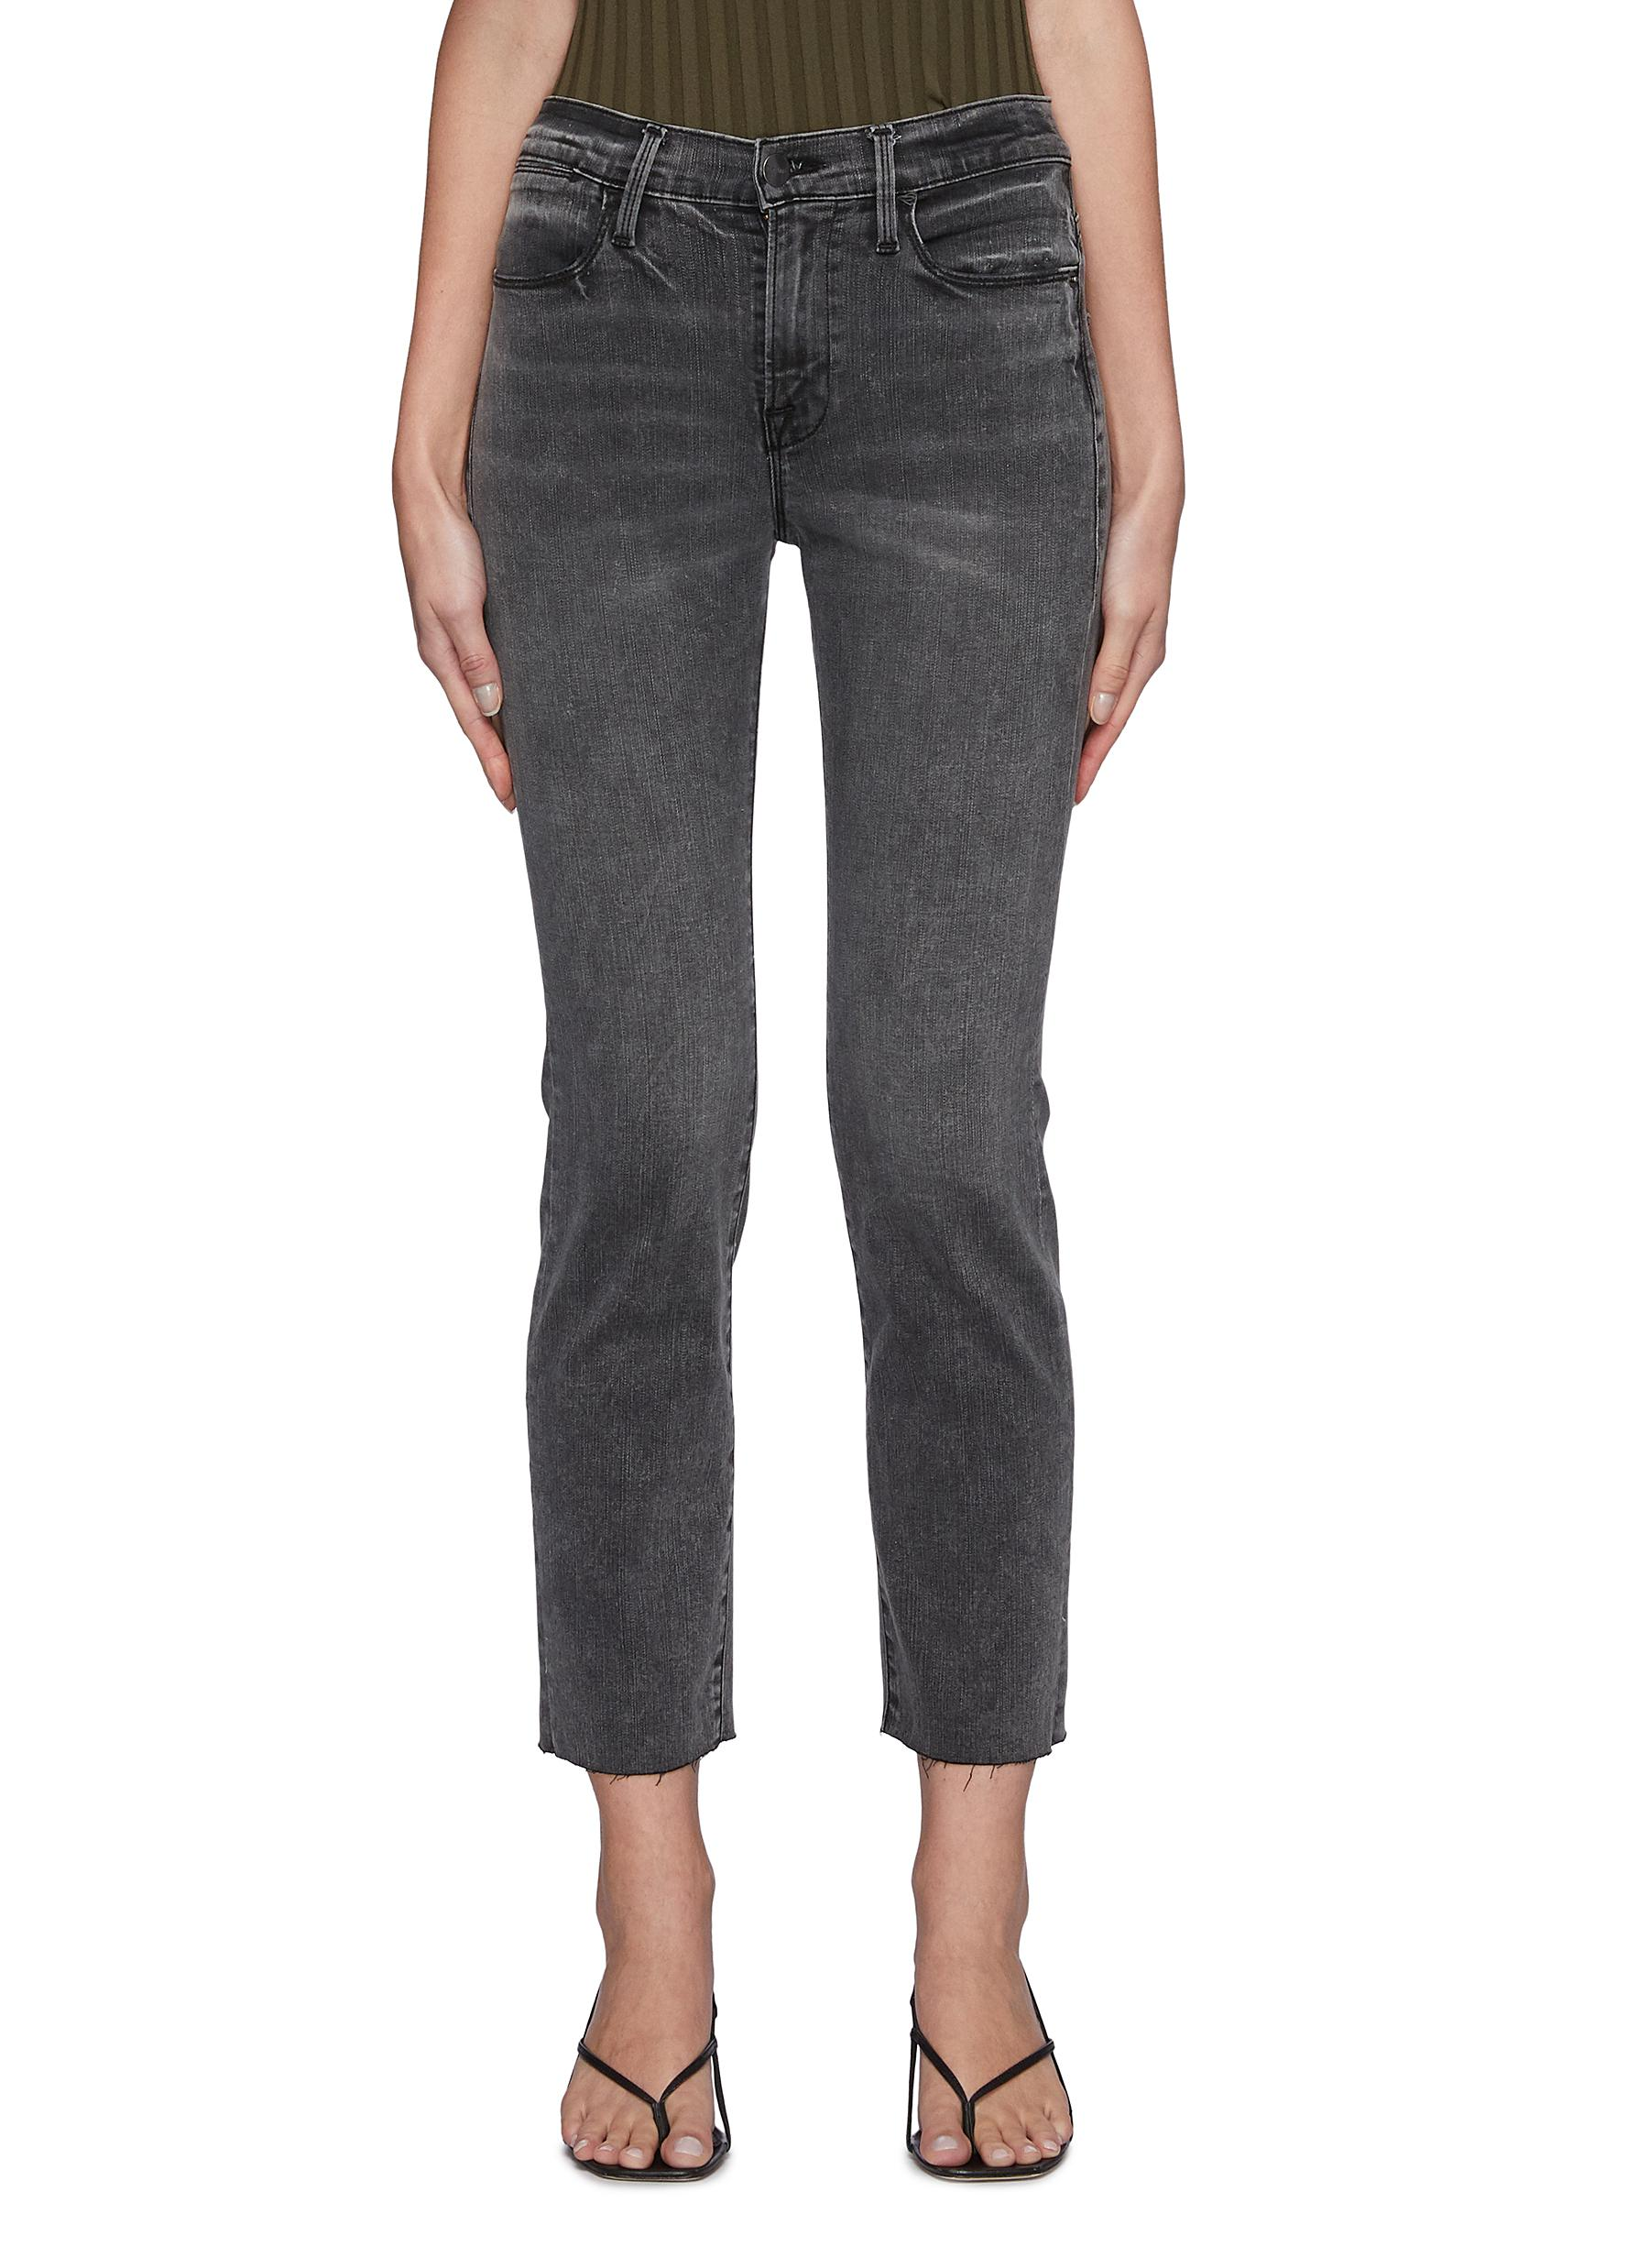 Le High Straight' cut out back pocket jeans